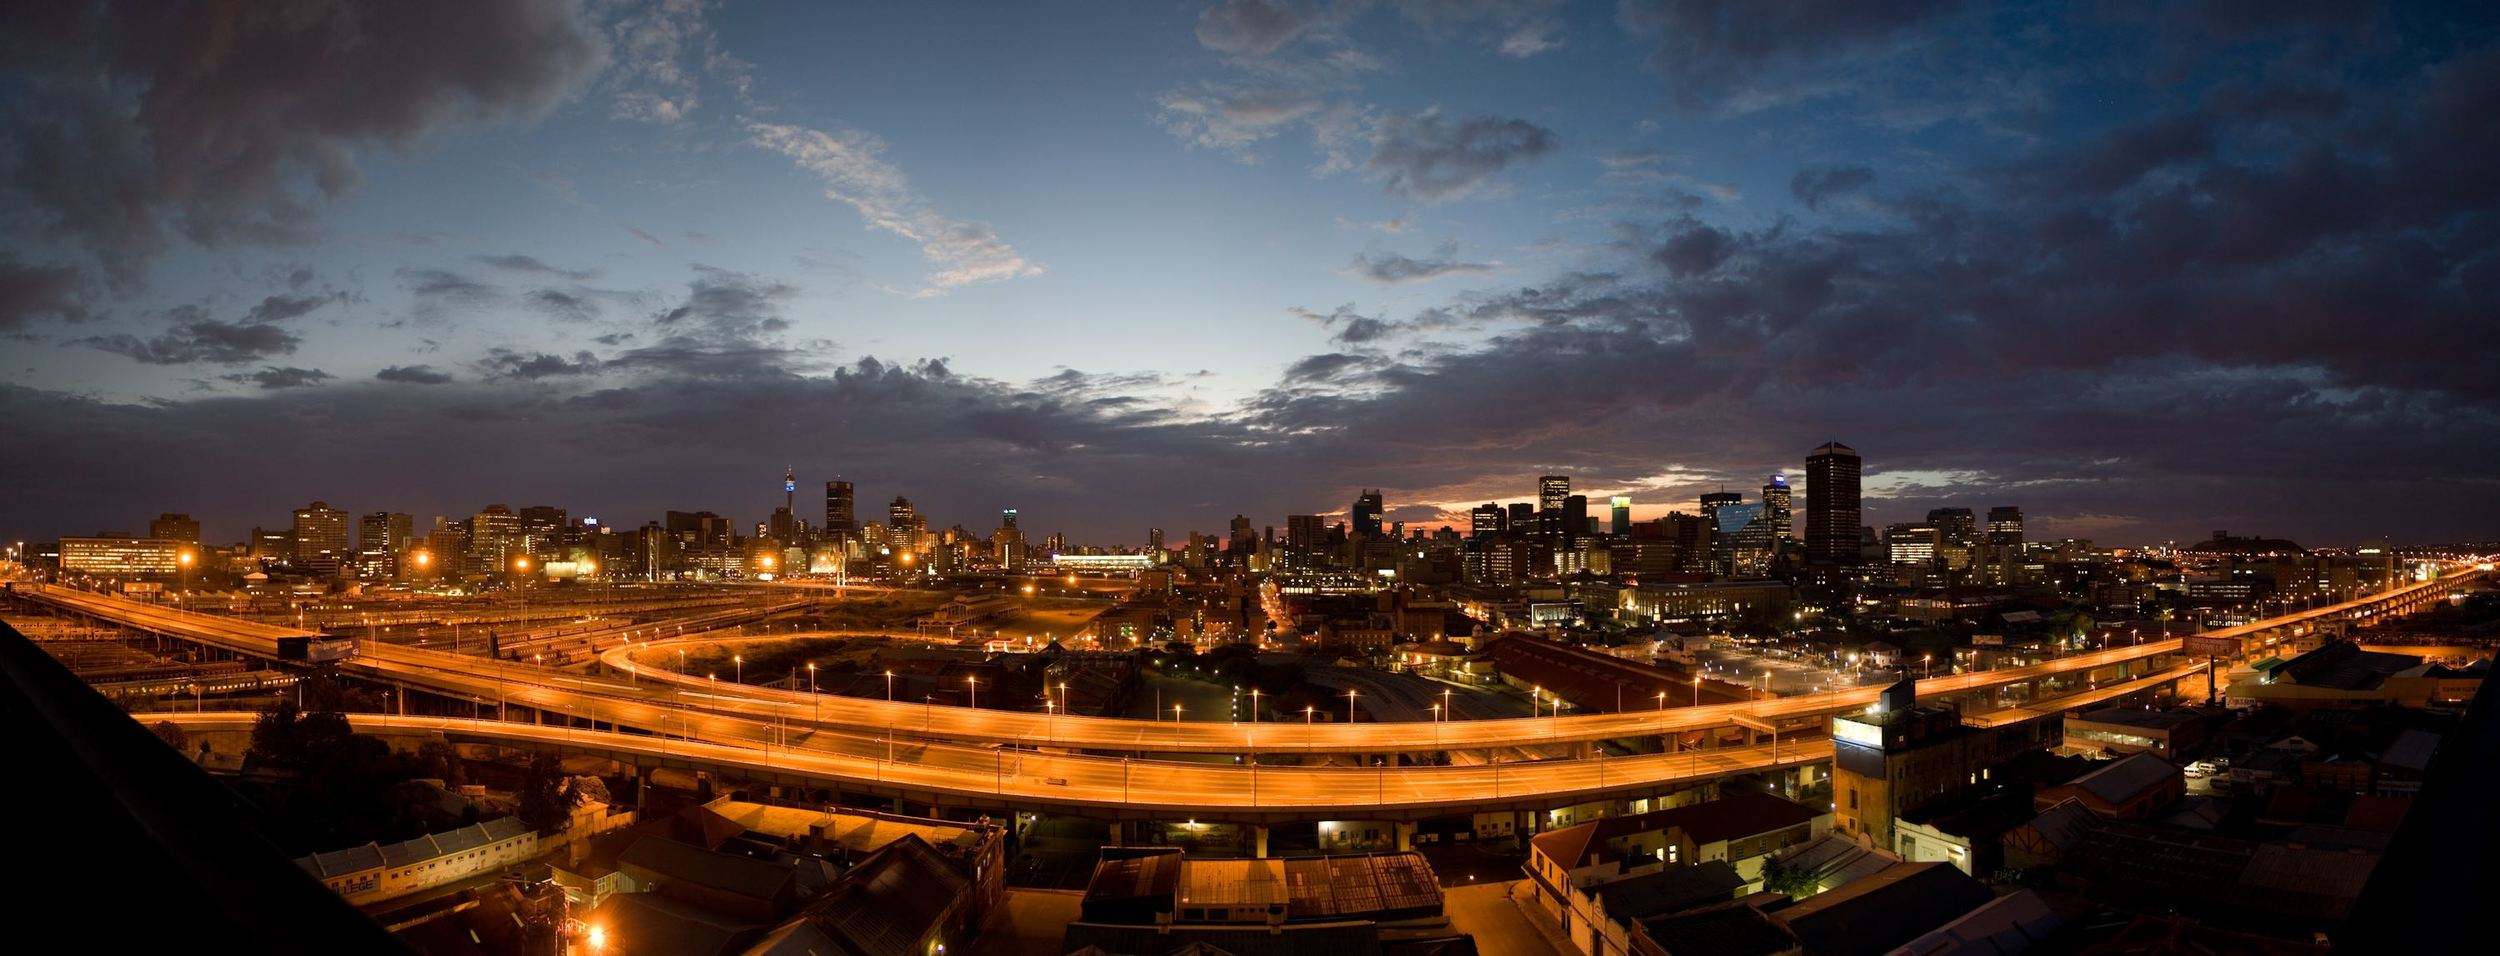 Johannesburg from the M1 highway. Source: Wikimedia Commons